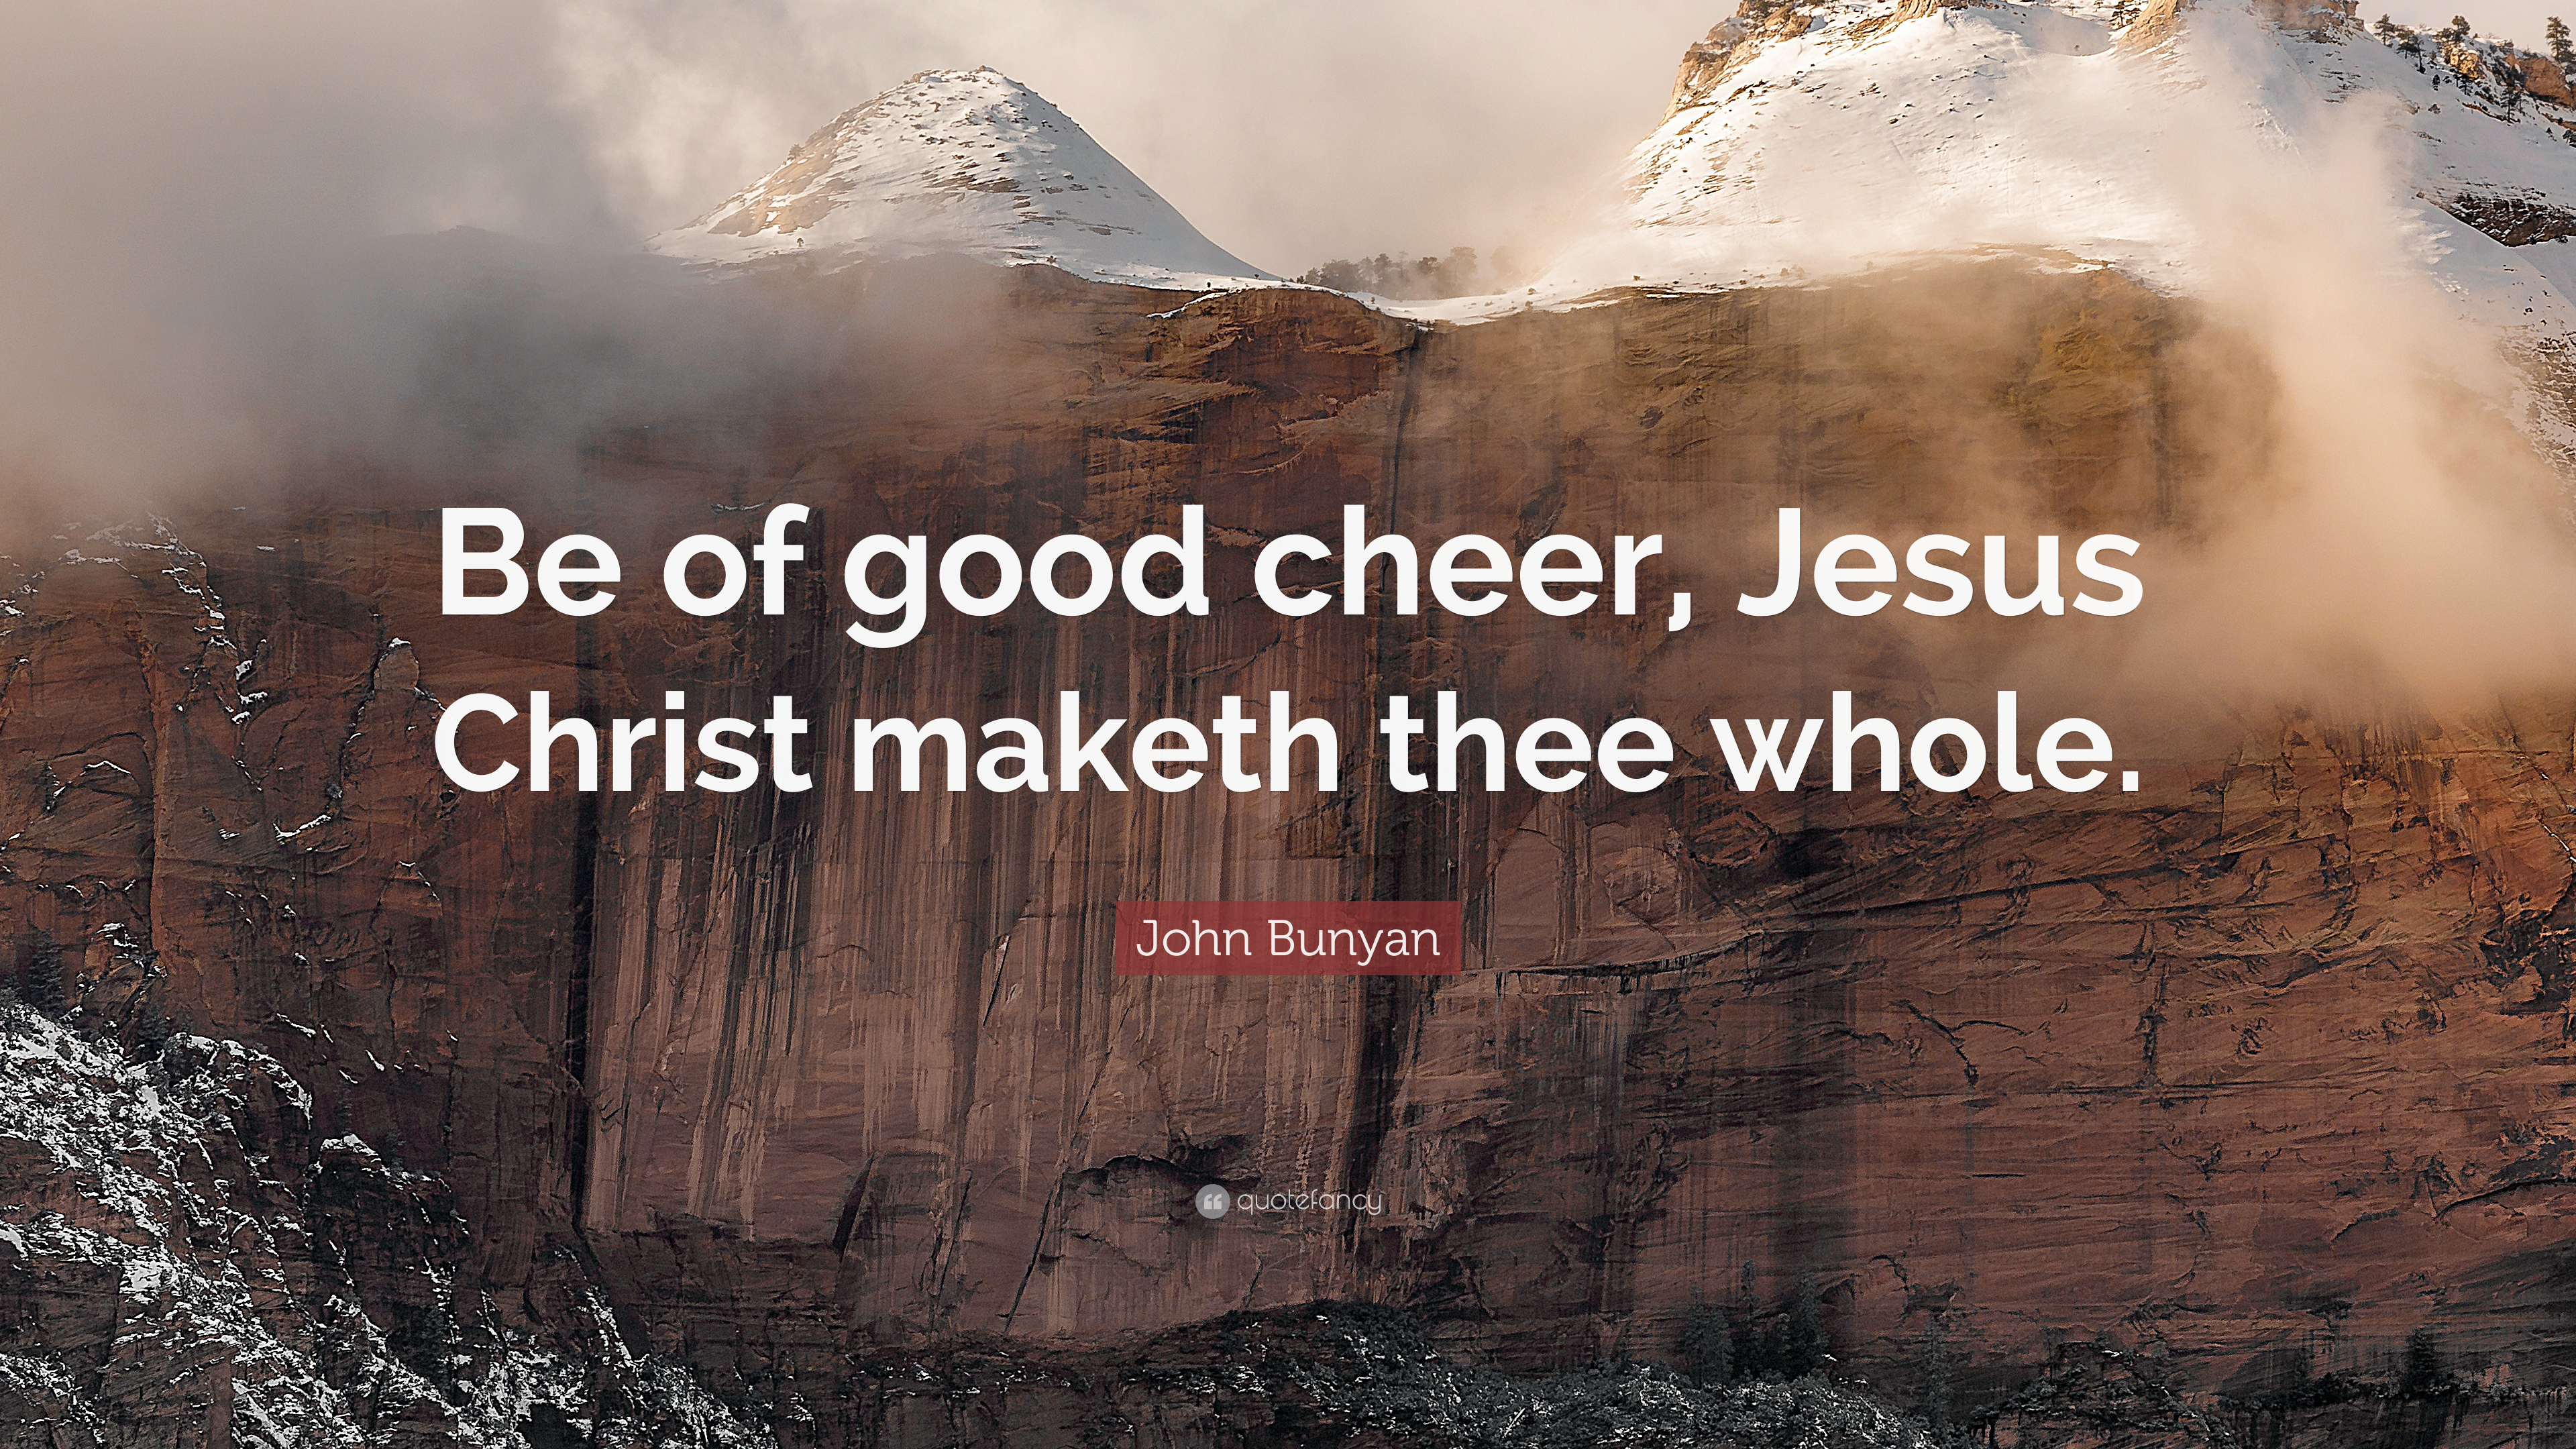 John Bunyan Quote Be Of Good Cheer Jesus Christ Maketh Thee Whole